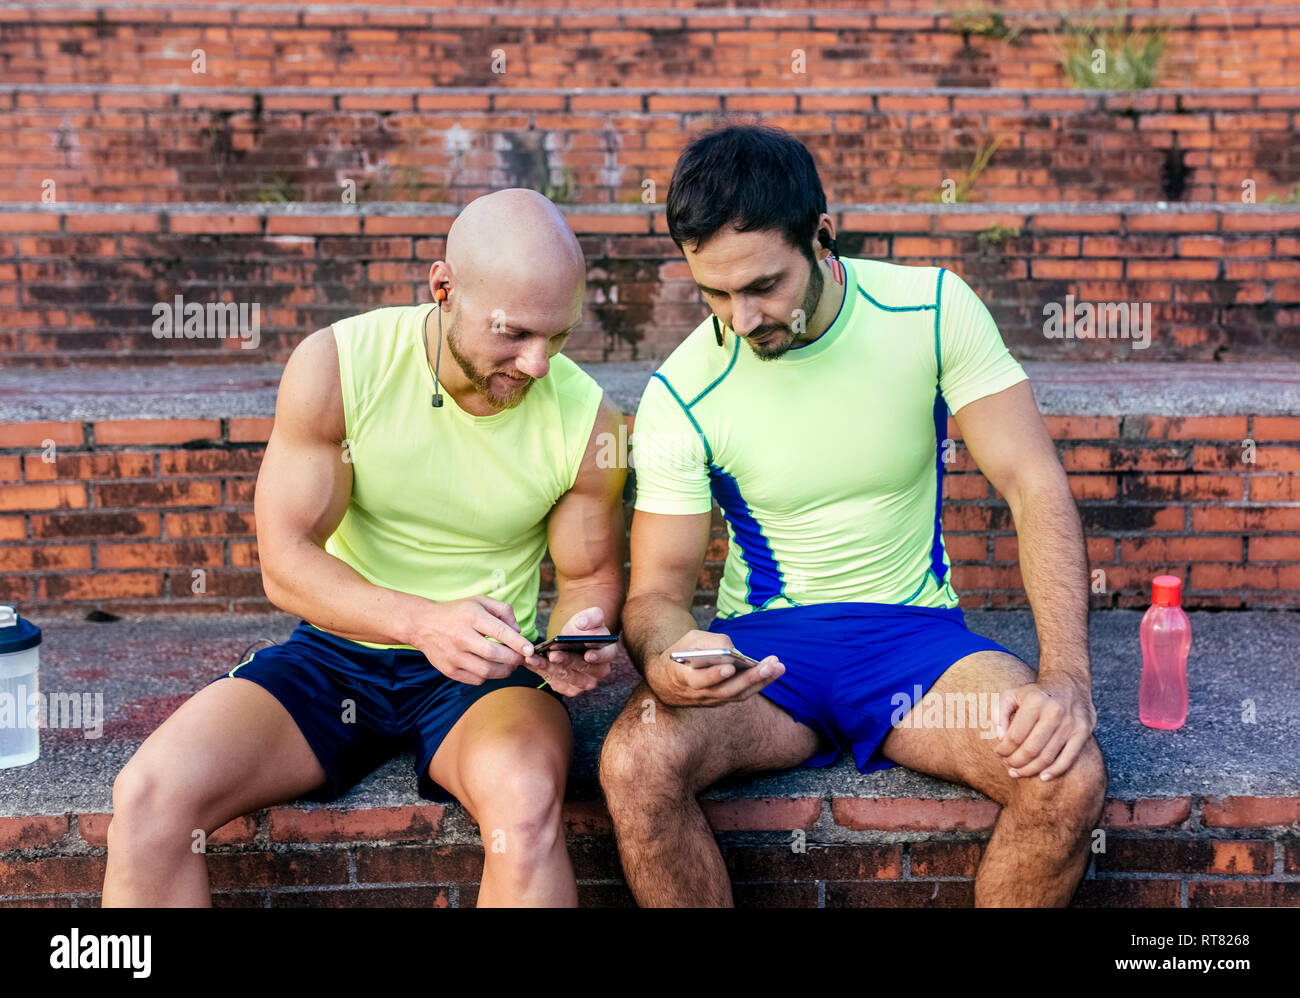 Two athletes sharing smartphones after workout - Stock Image